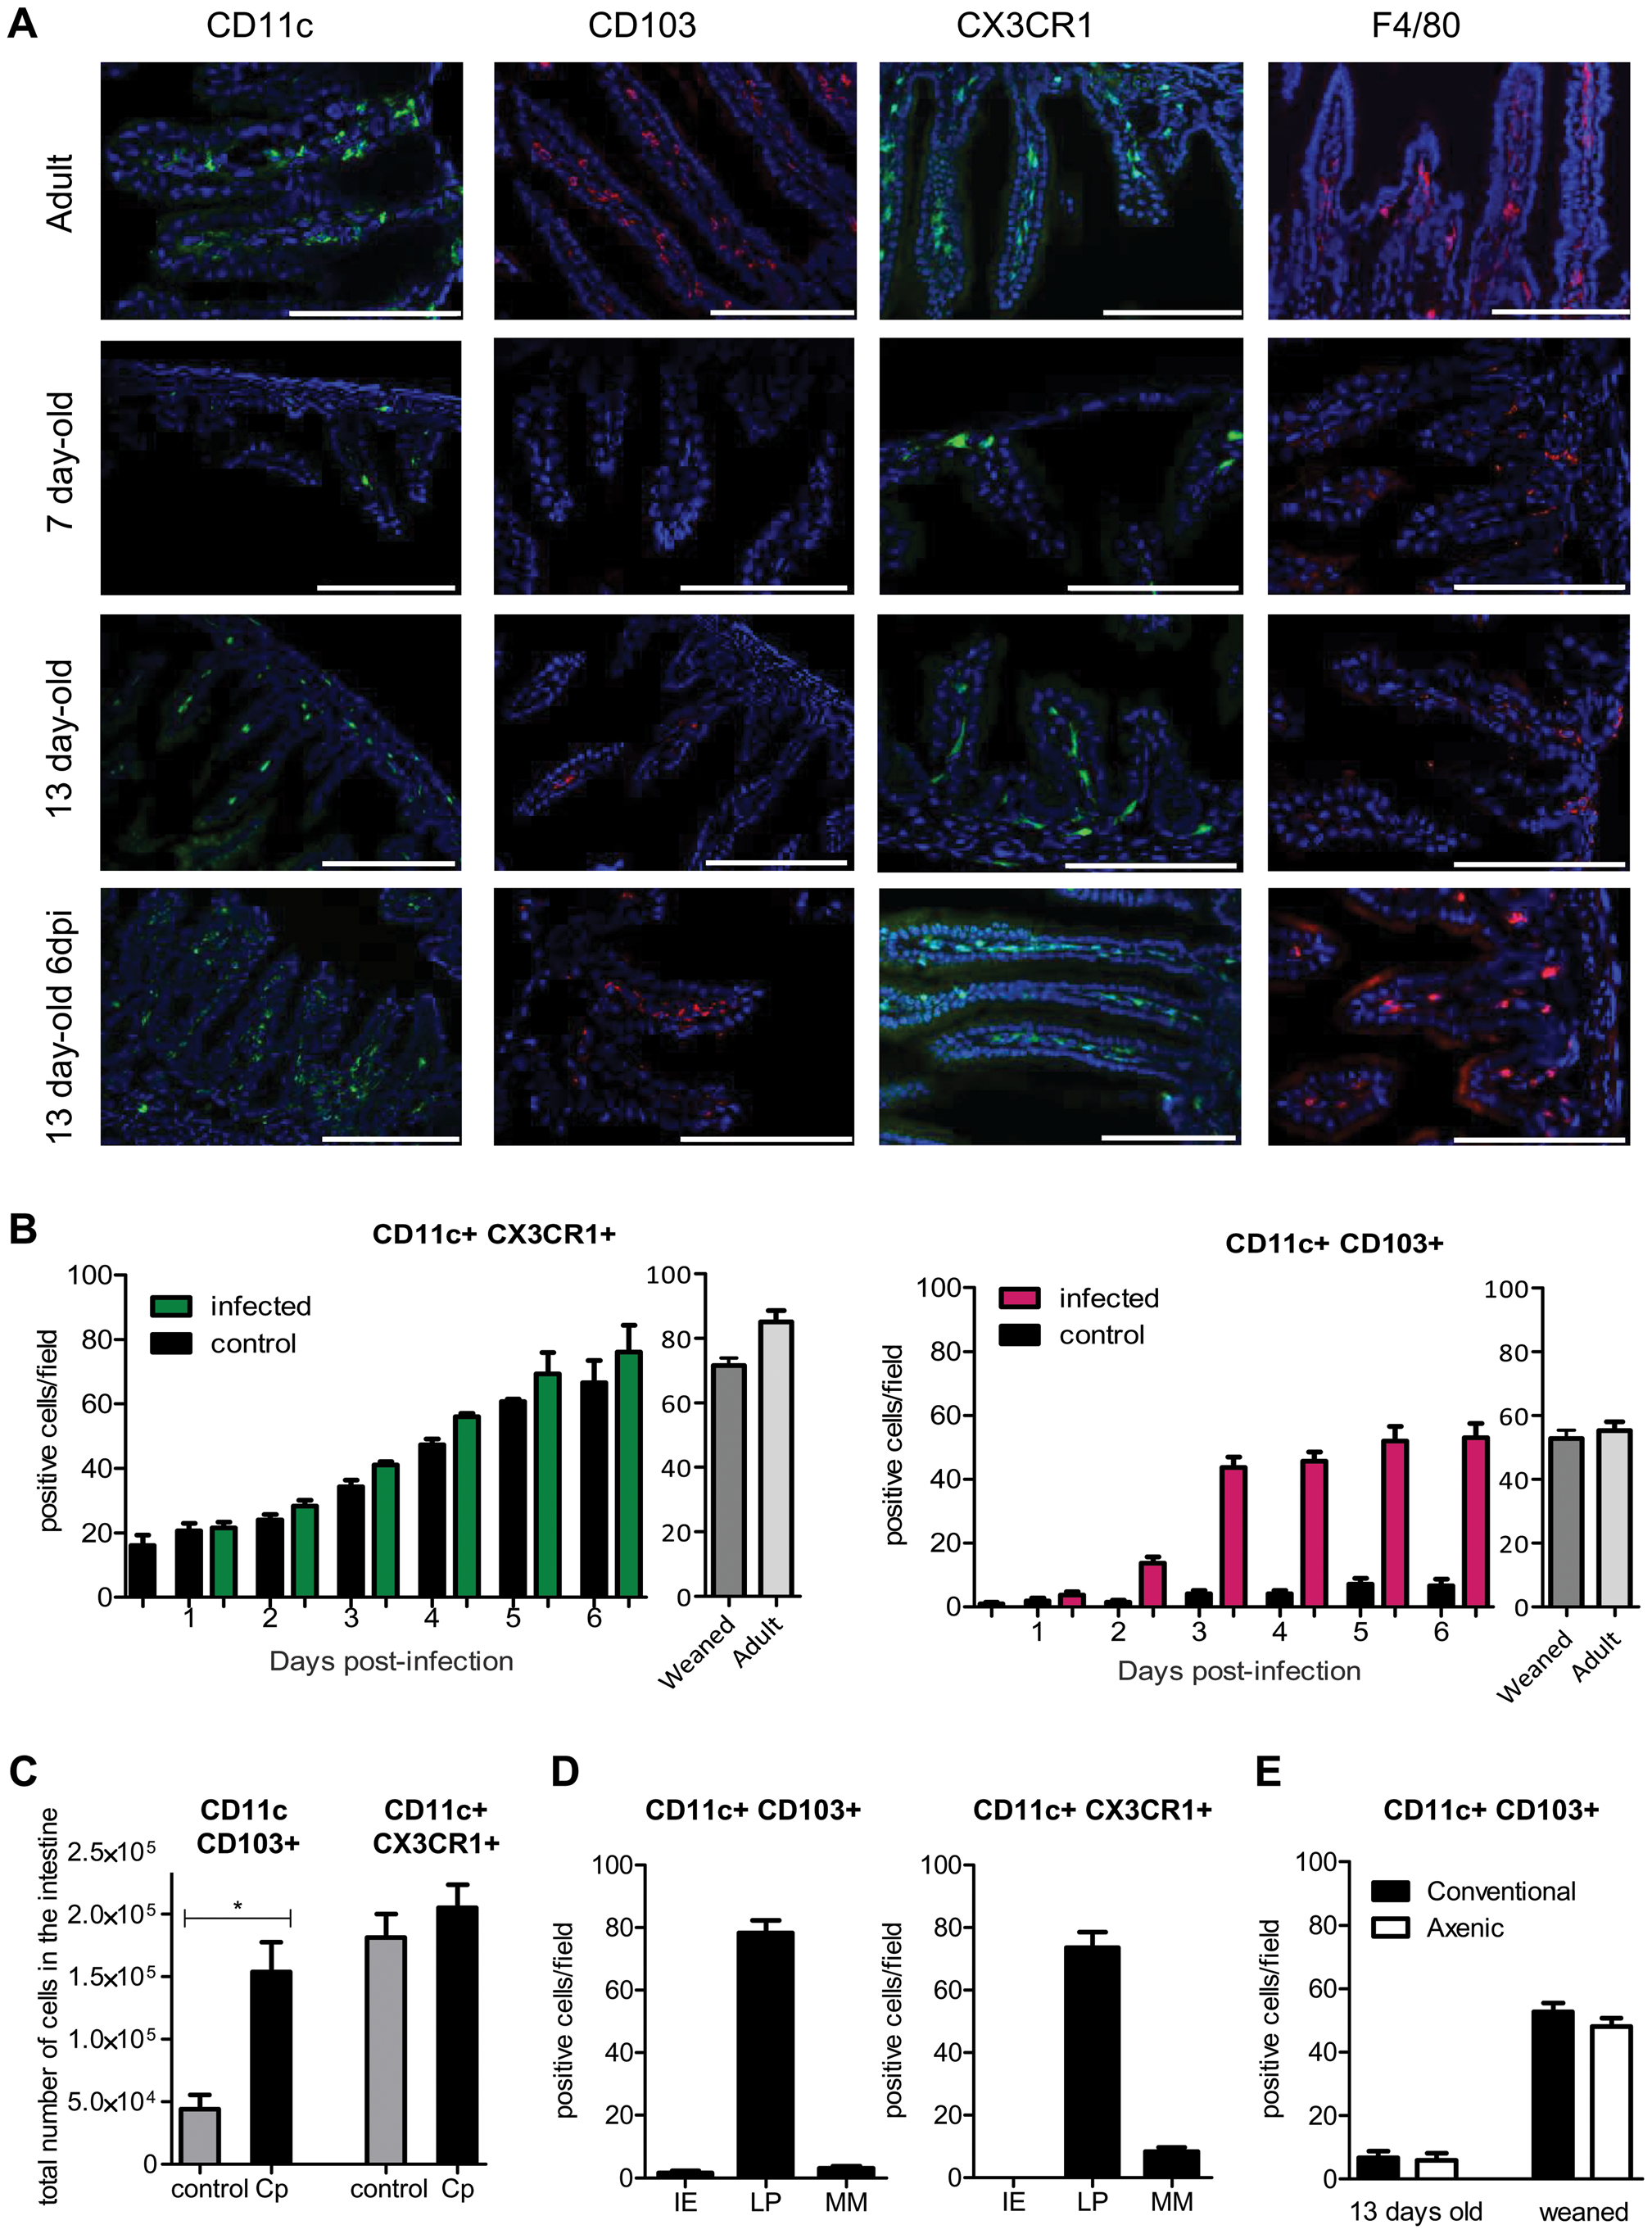 Rapid recruitment of CD11c+ CD103+ in the infected mucosa.